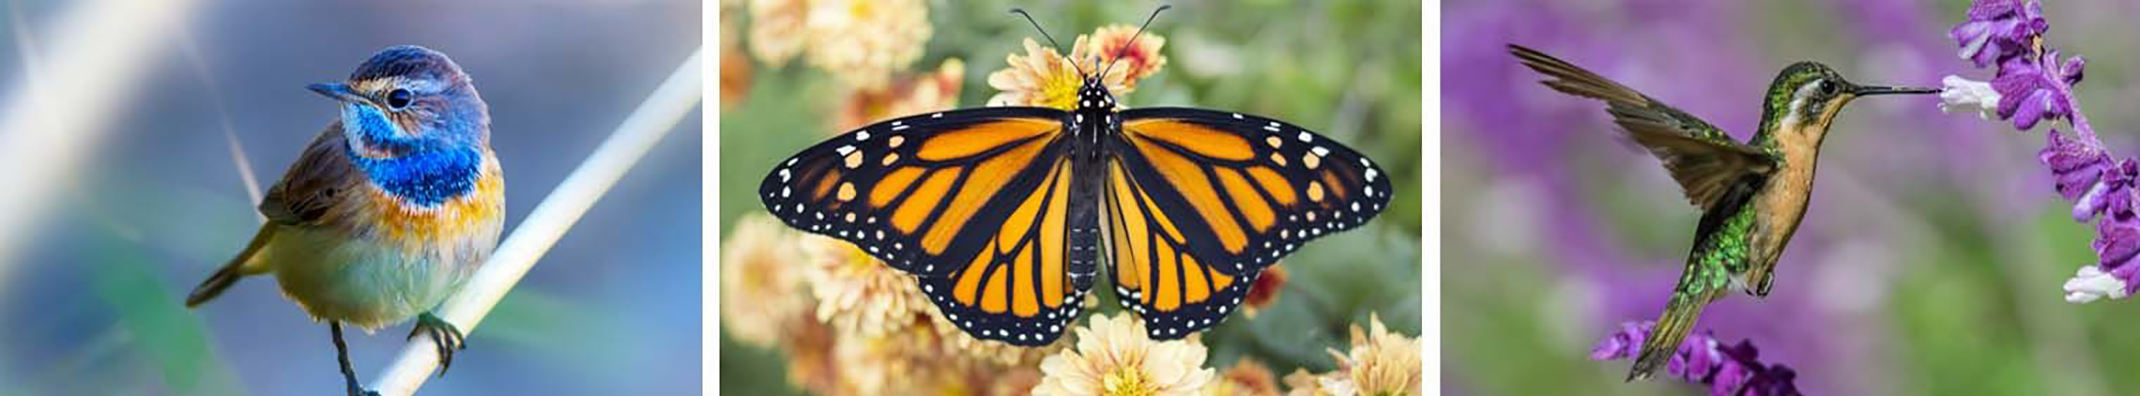 3 images of pollinators with blue bird, monarch butterfly on flowers, hummingbird drinking nectar from flower